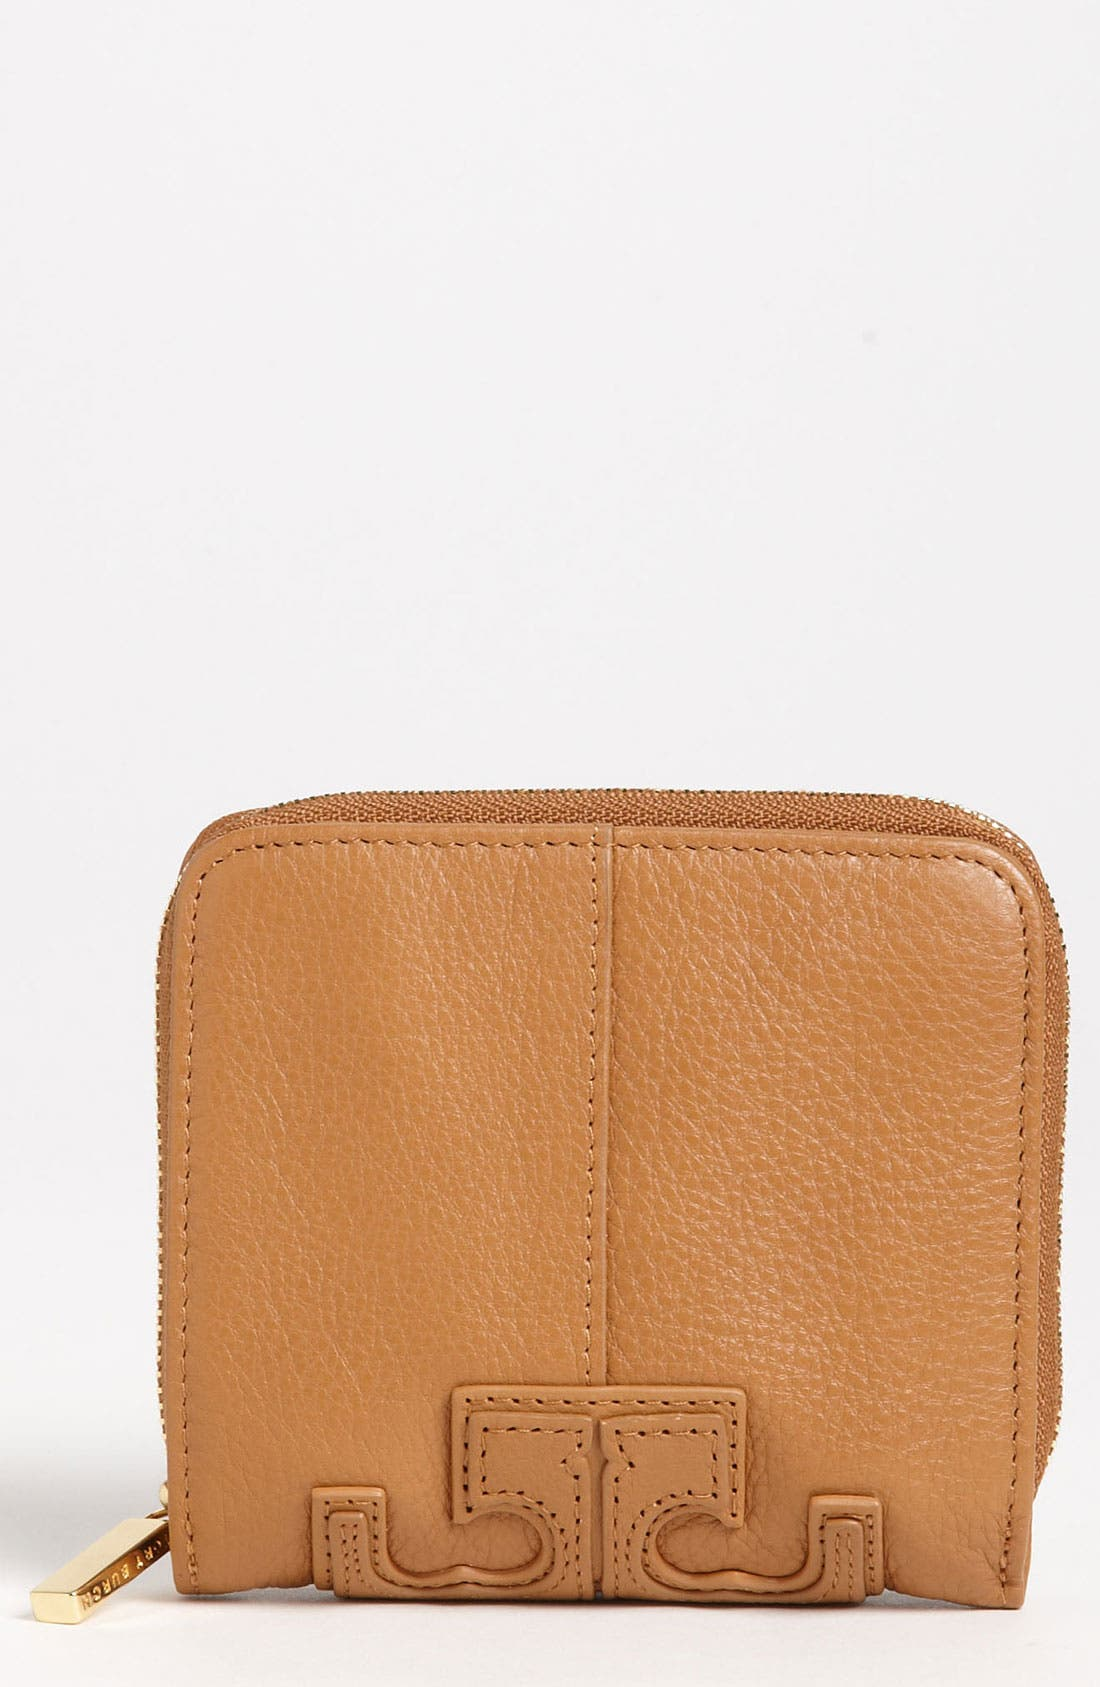 Alternate Image 1 Selected - Tory Burch 'Stacked T' Compact Wallet